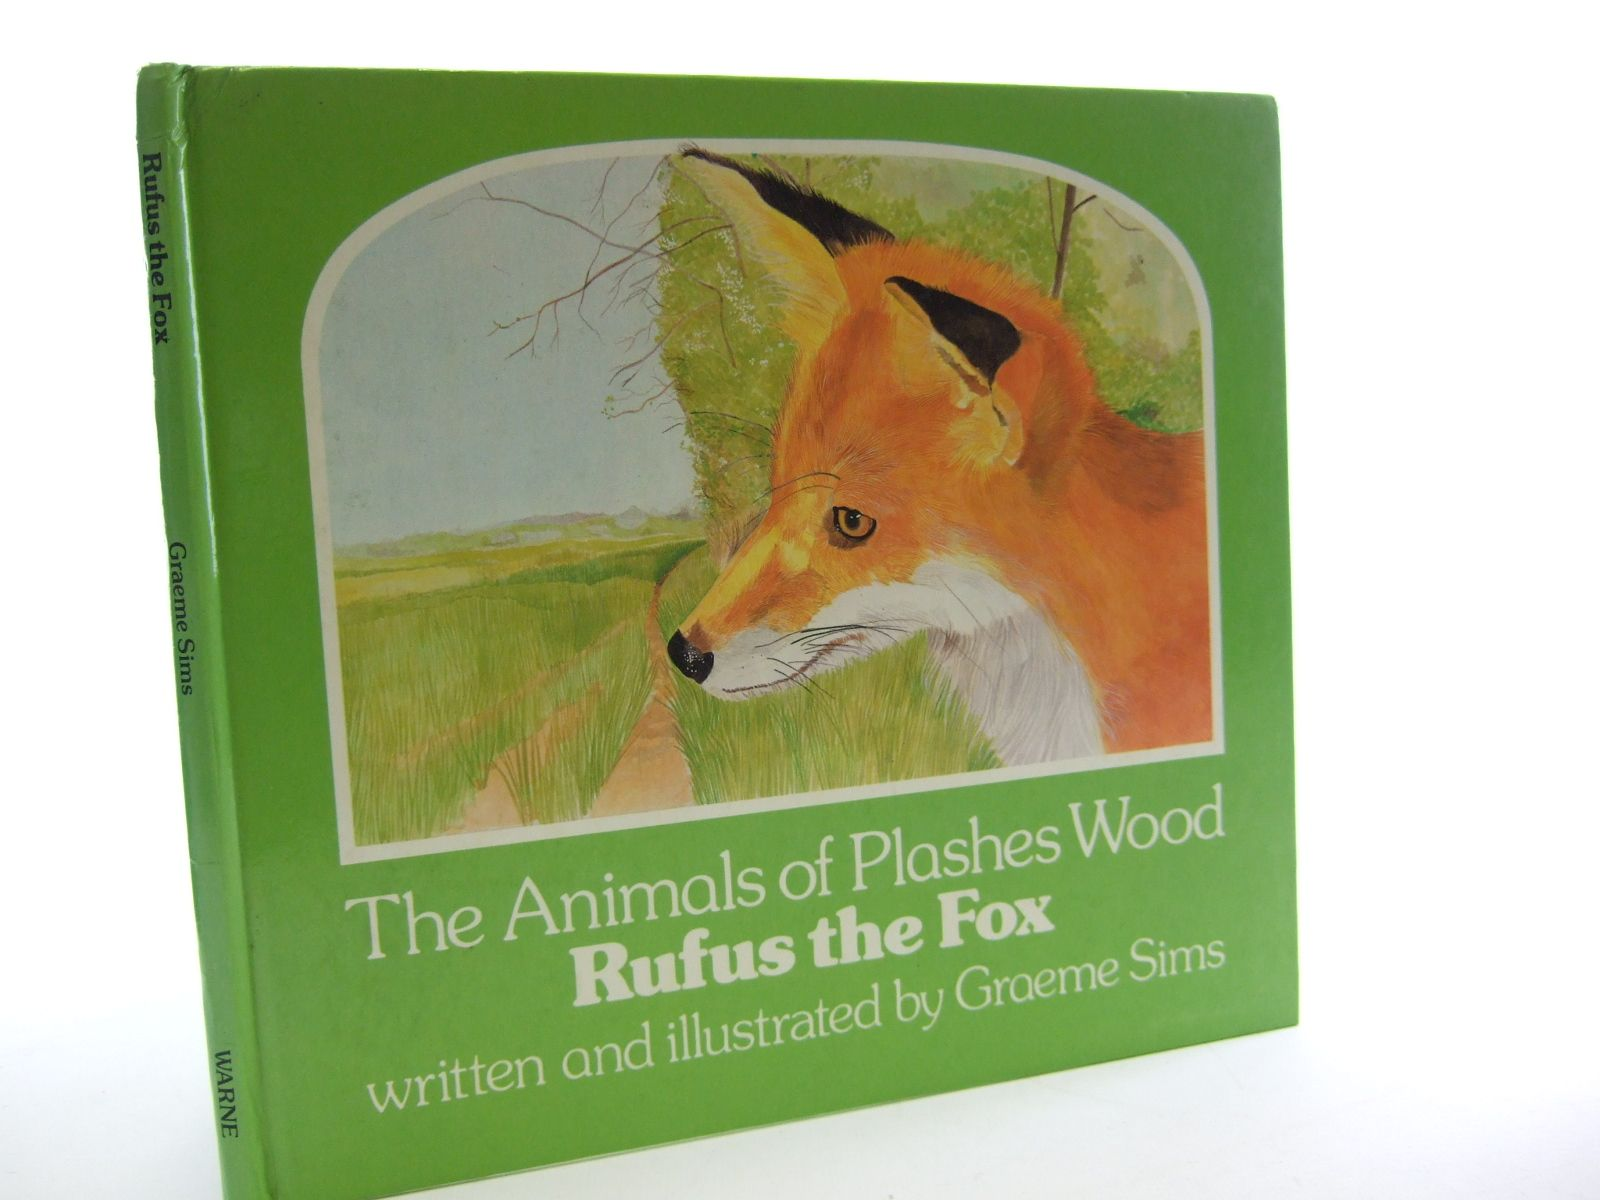 Photo of RUFUS THE FOX written by Sims, Graeme illustrated by Sims, Graeme published by Frederick Warne (Publishers) Ltd. (STOCK CODE: 1107205)  for sale by Stella & Rose's Books